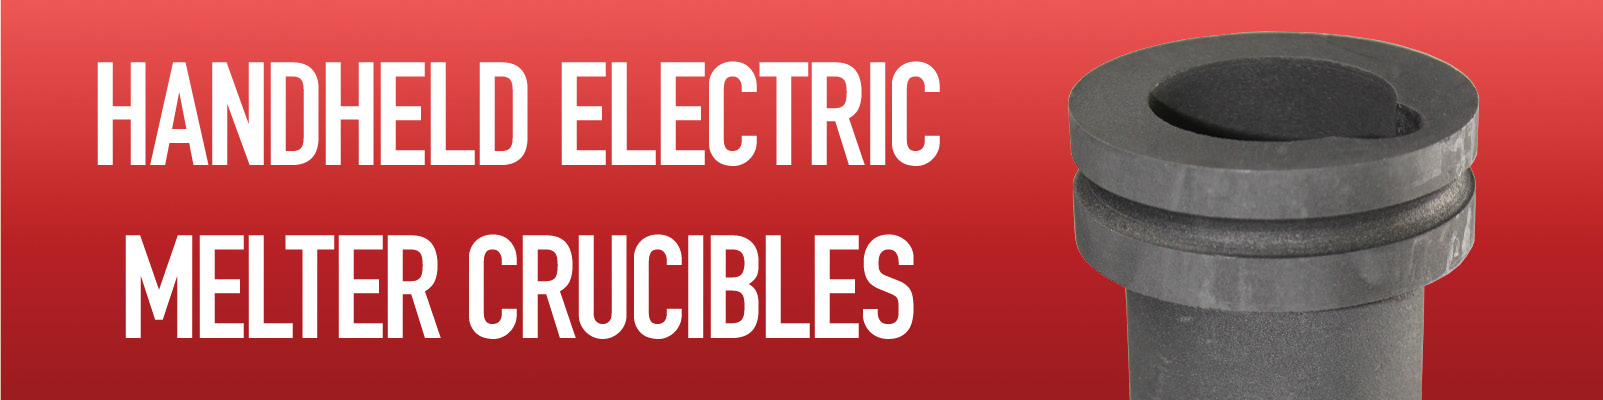 Handheld Electric Melter Crucibles